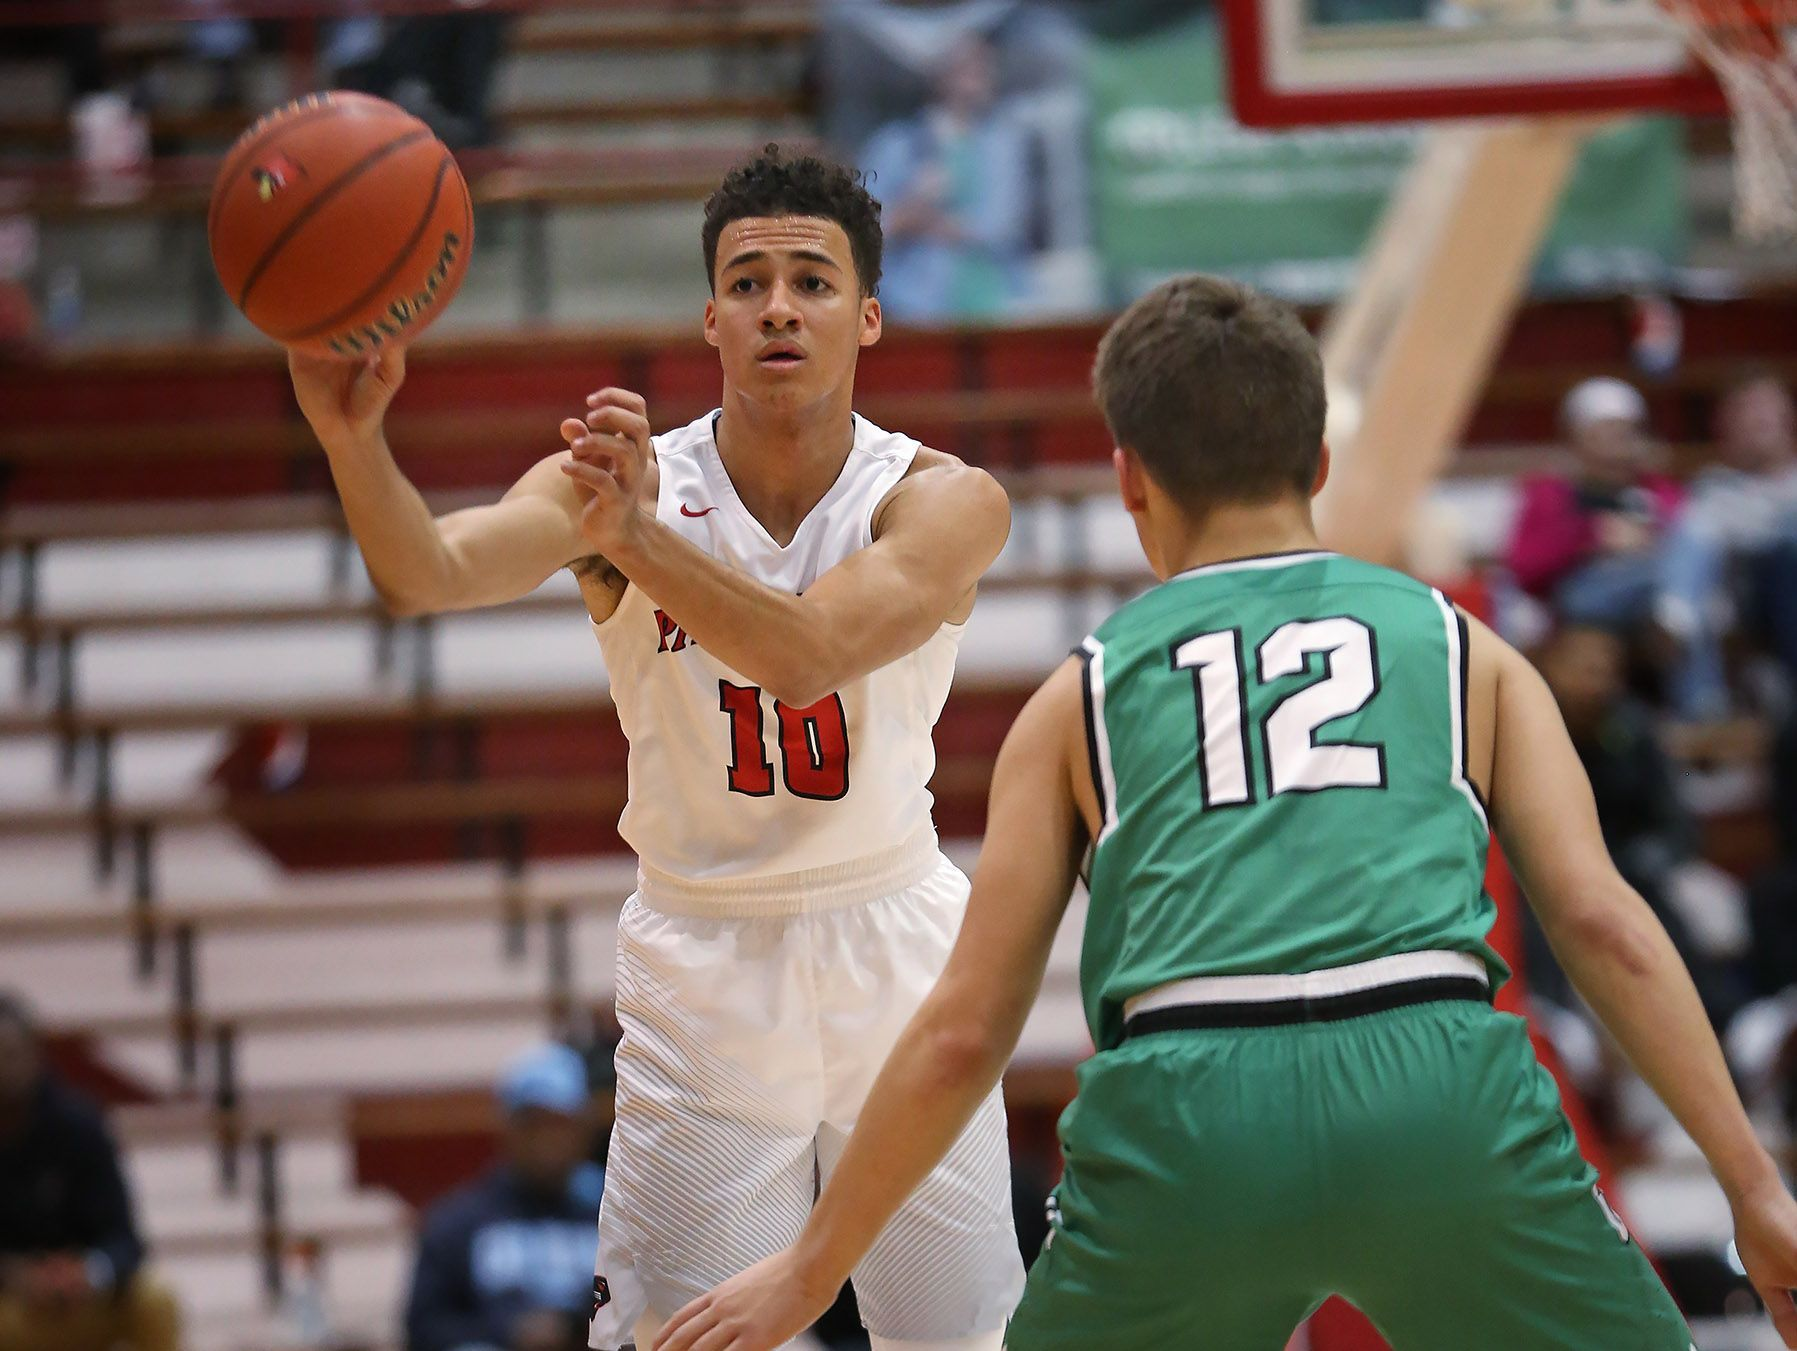 Park Tudor's #10 Kobe Webster passes past Cloverdale's #12 Nick Winders during the Cloverdale vs Park Tudor basketball game of the Tip Off Classic at Southport Fieldhouse, Saturday, December 10, 2016. Park Tudor won the game 74-63.